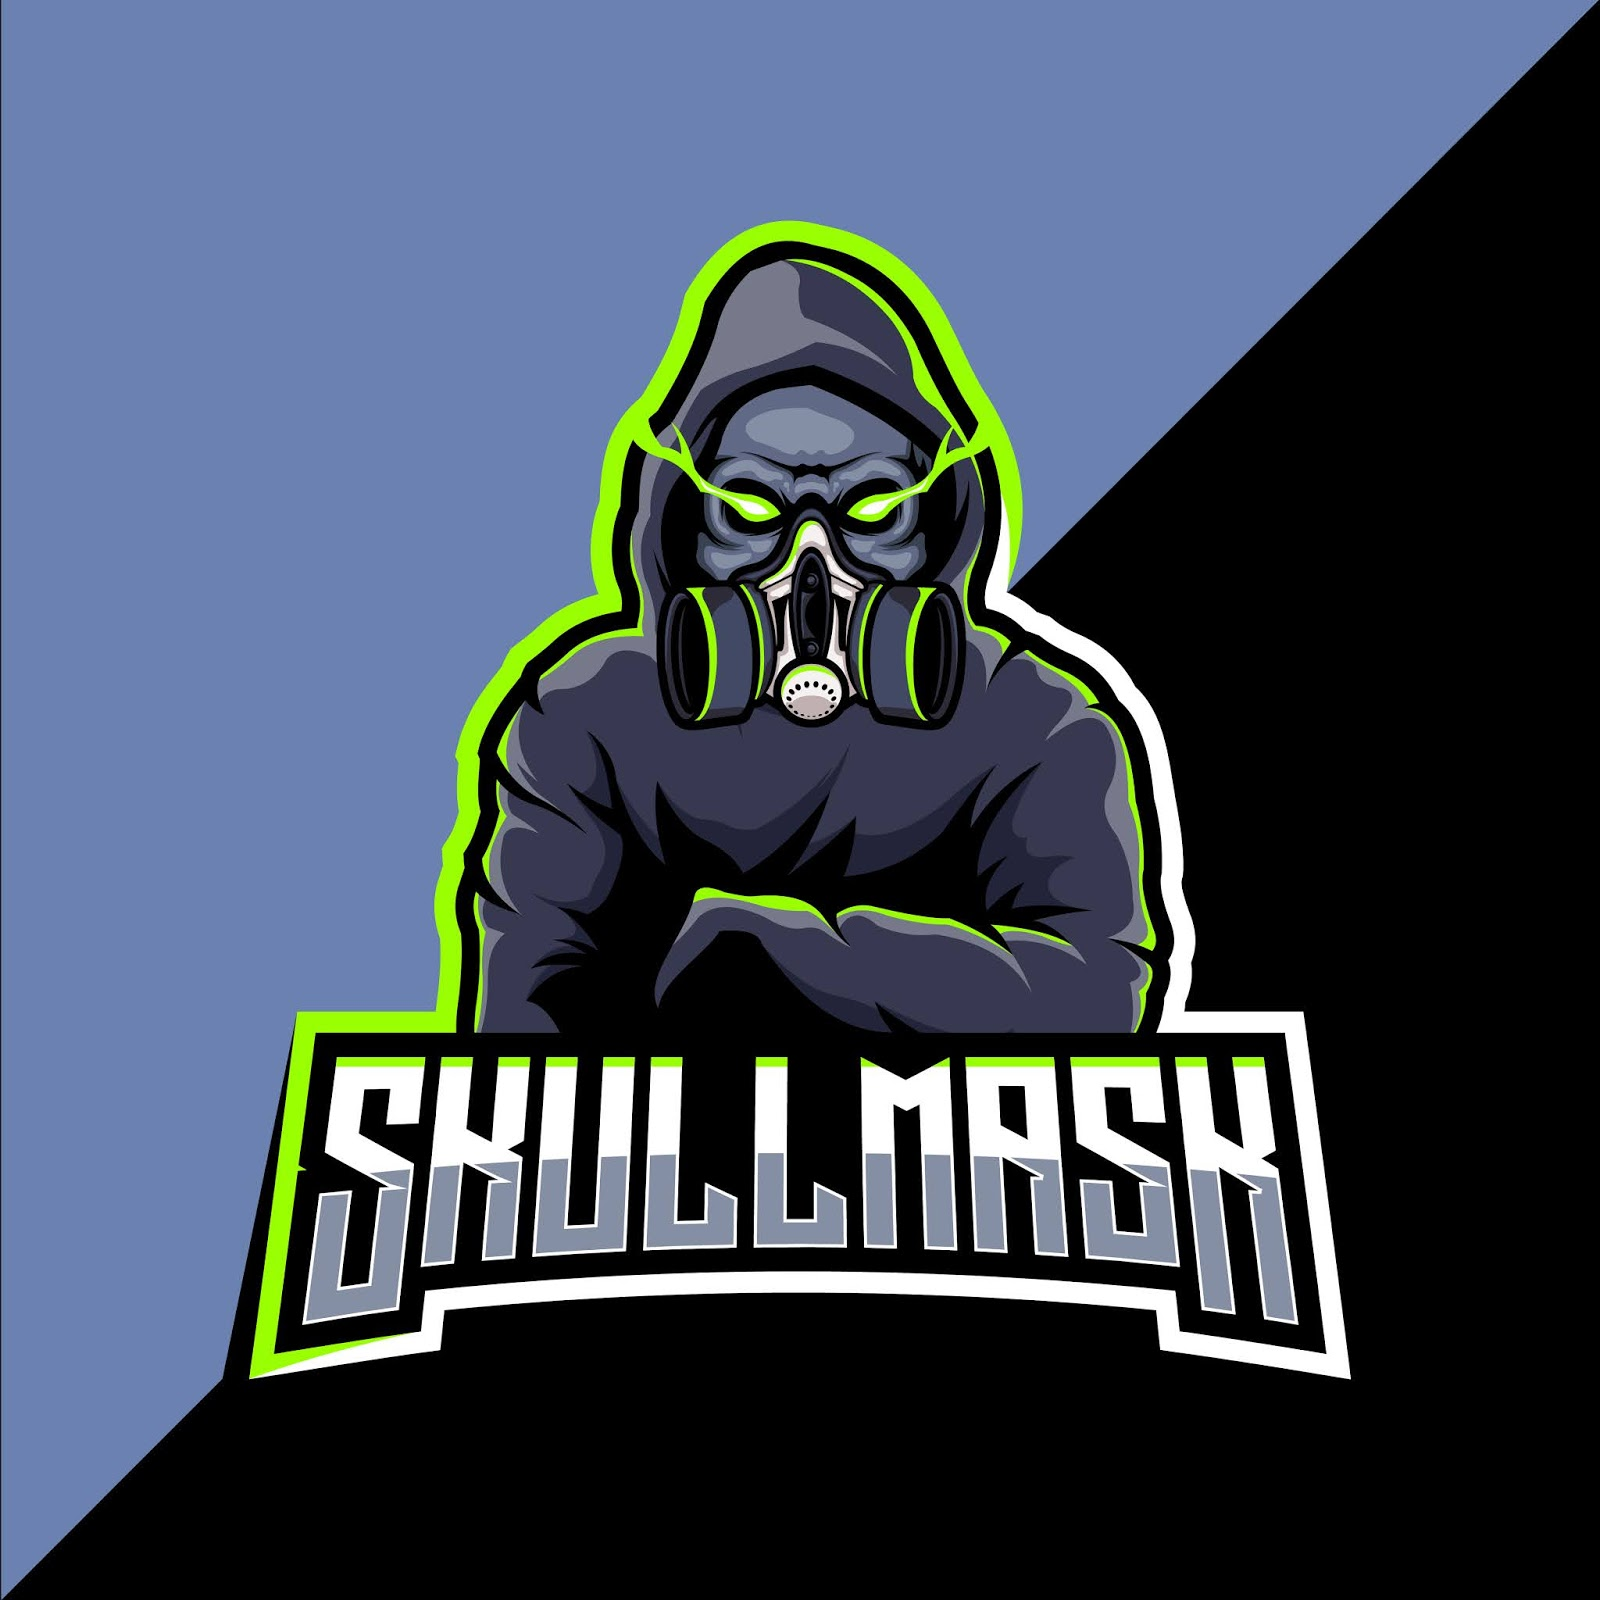 Skull With Gas Mask Mascot Esport Logo Design Free Download Vector CDR, AI, EPS and PNG Formats